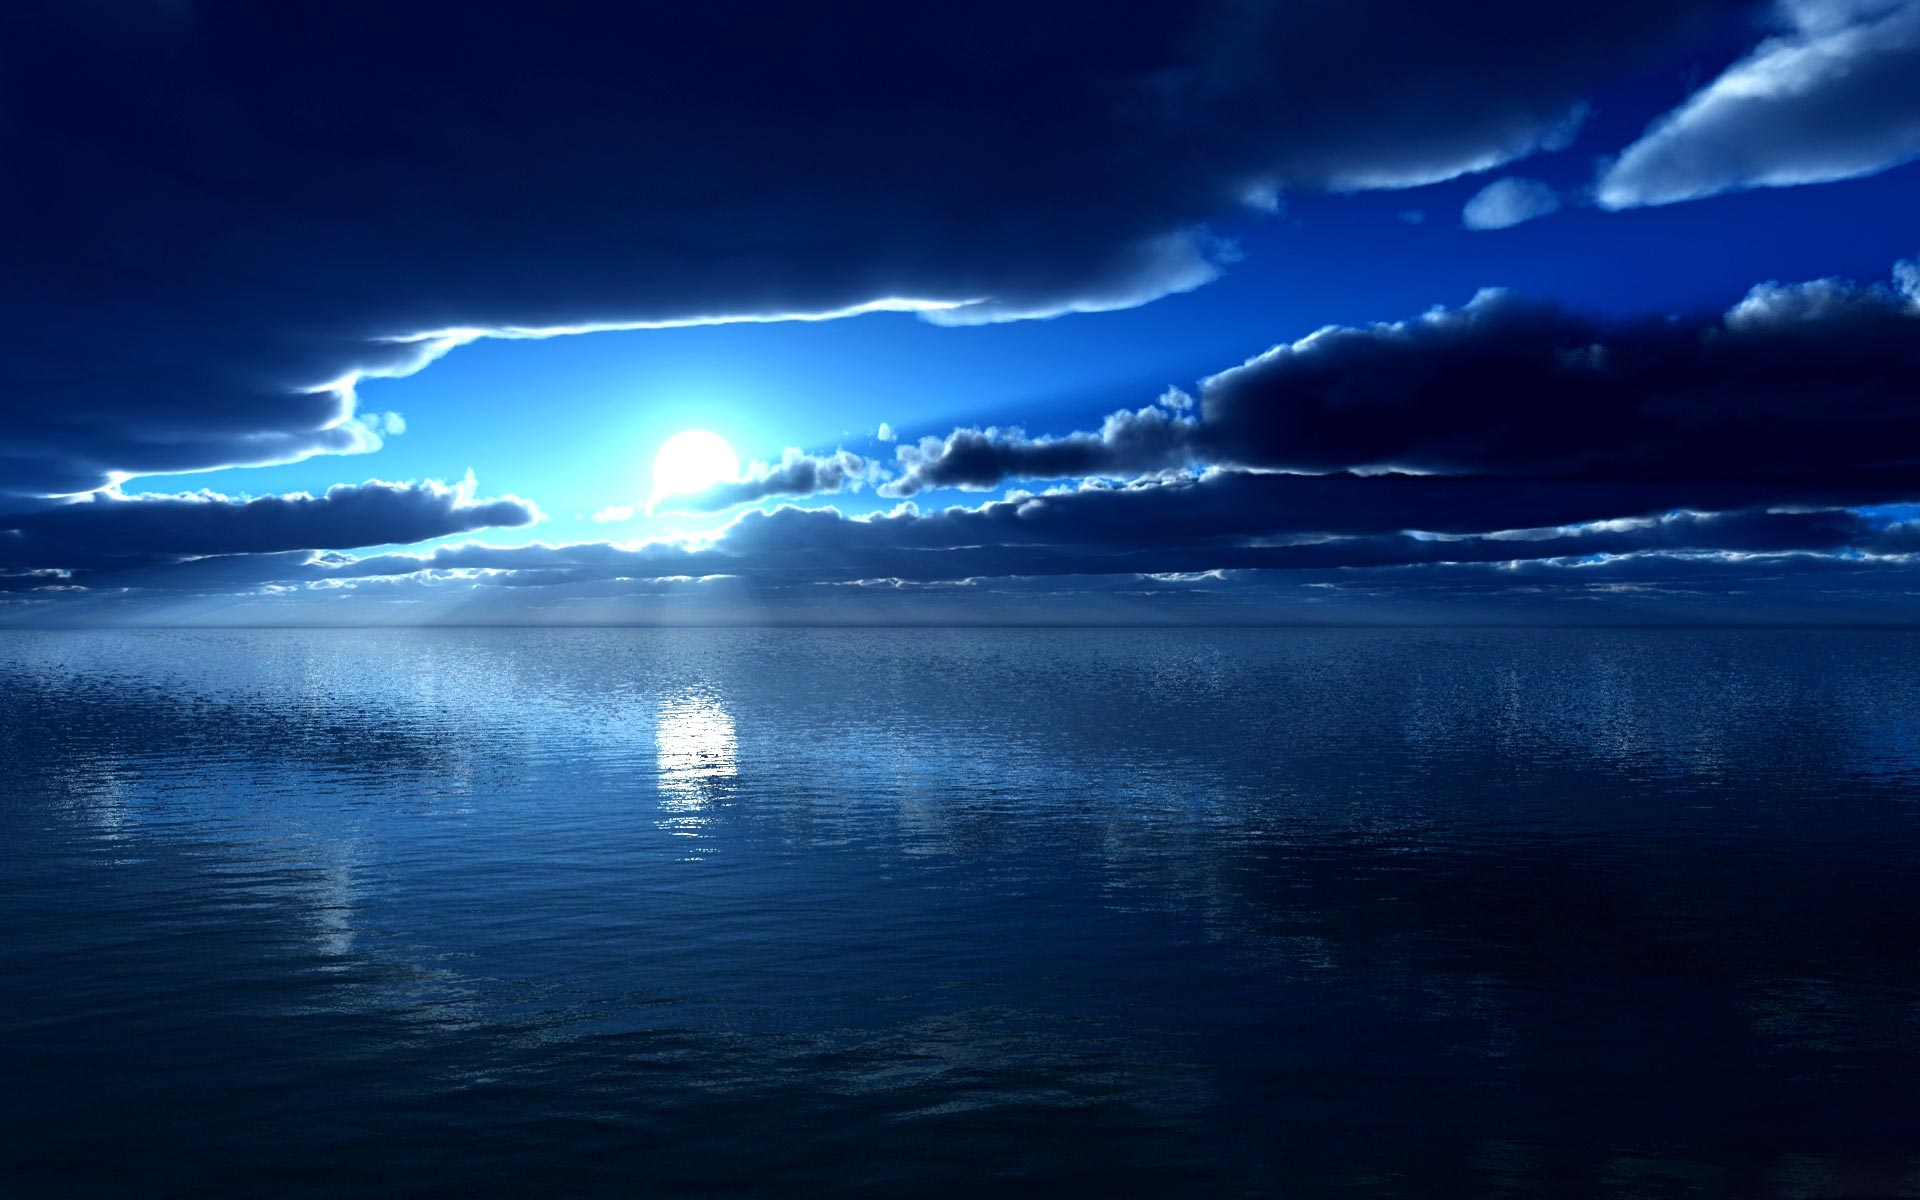 relax desktop backgrounds hd Wallpaper in high resolution for 1920x1200